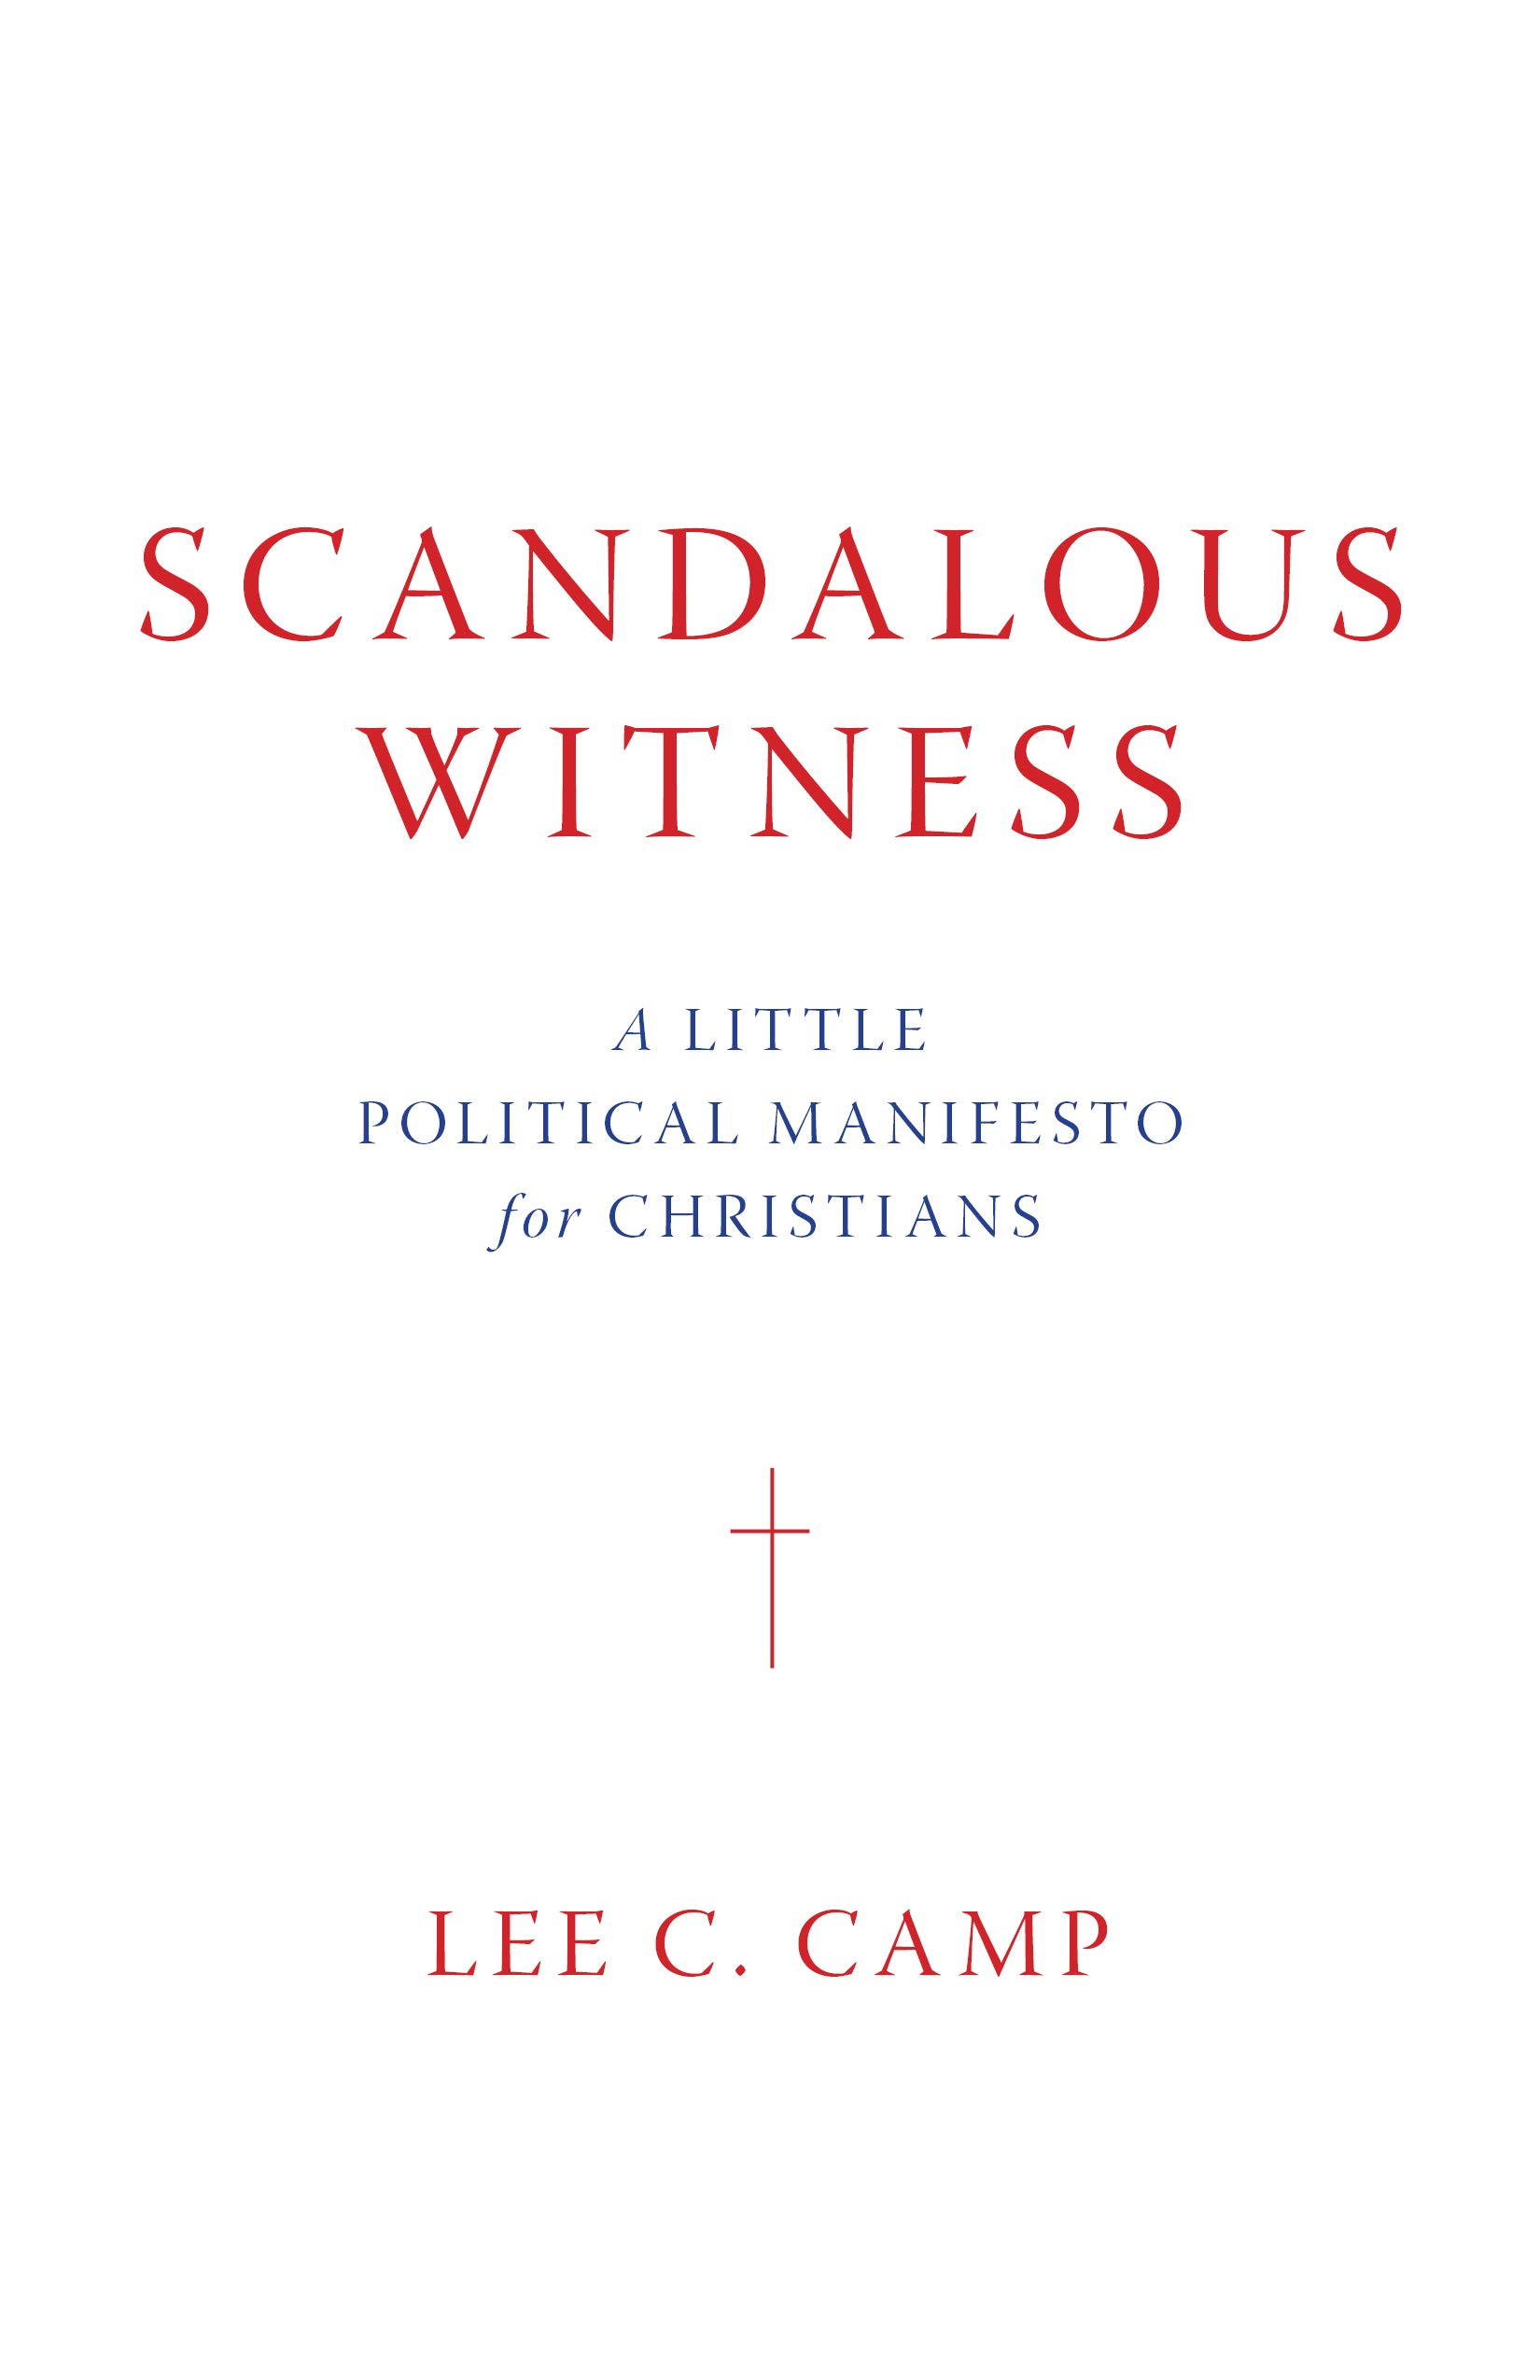 Scandalous-Witness-Cover.jpg